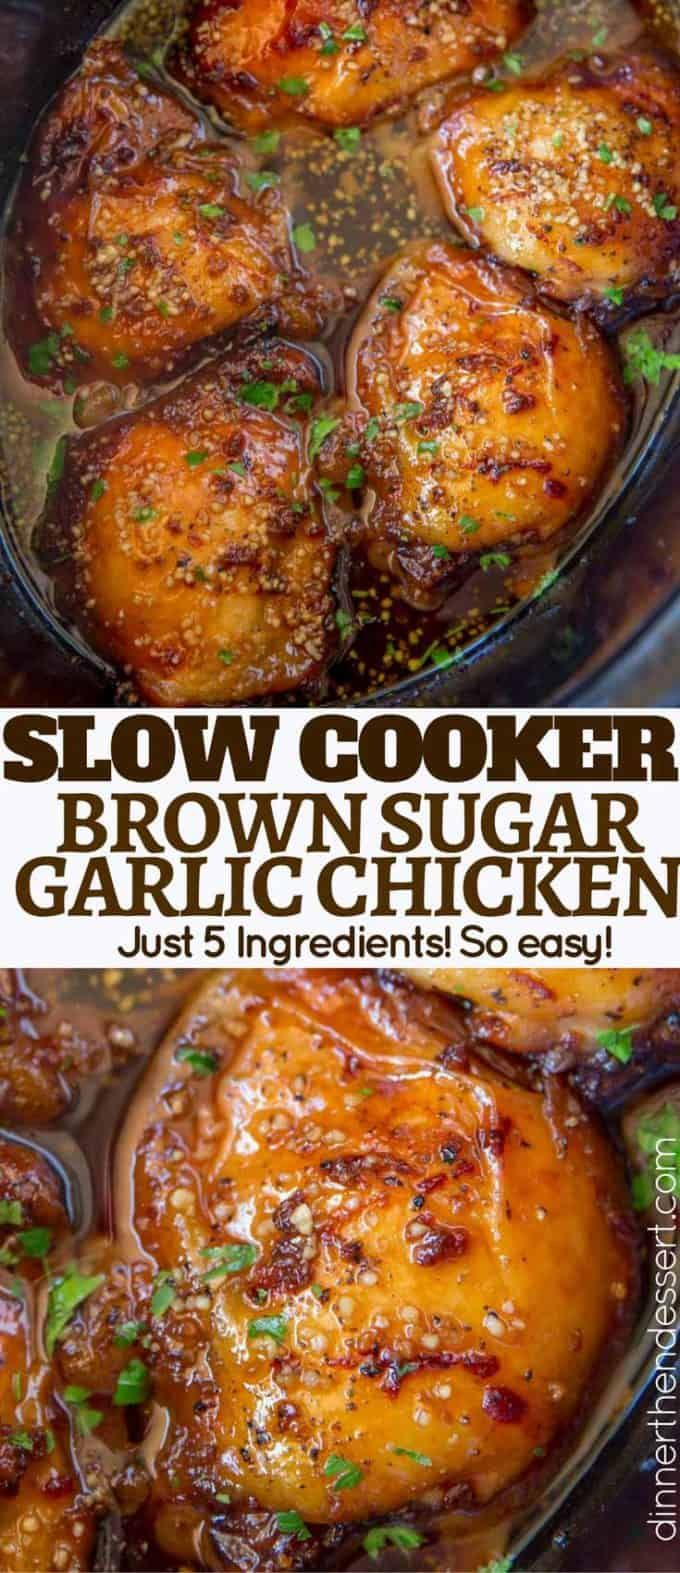 Slow Cooker Brown Sugar Garlic Chicken made with just five ingredients, you can set it in the morning in just minutes and have the perfect weeknight meal! #garlicchicken